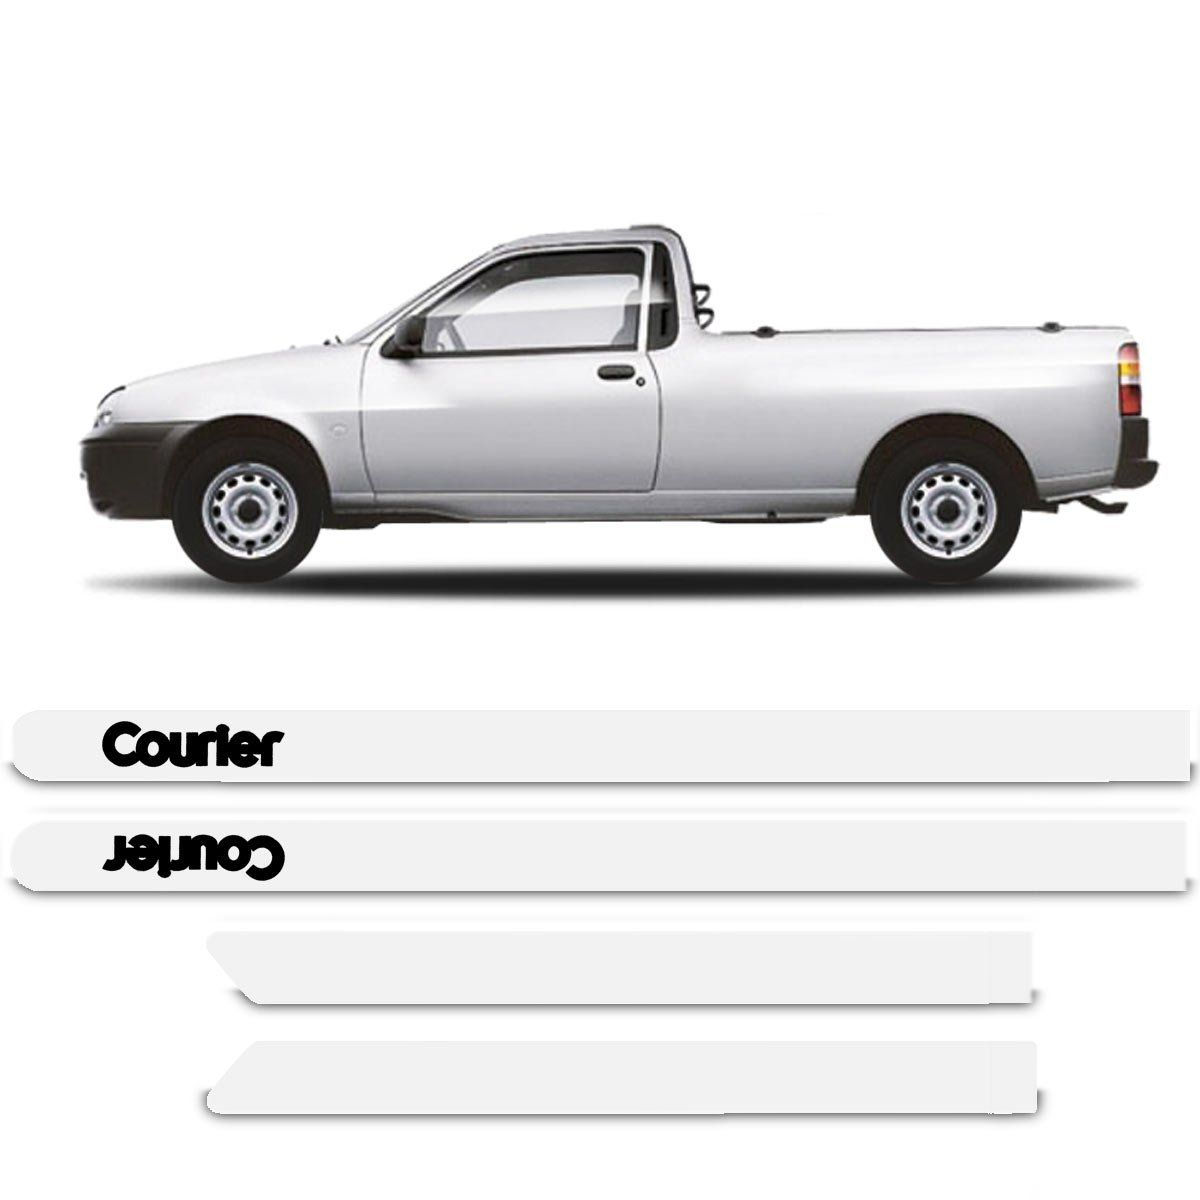 Friso Lateral Ford Courier Personalizado